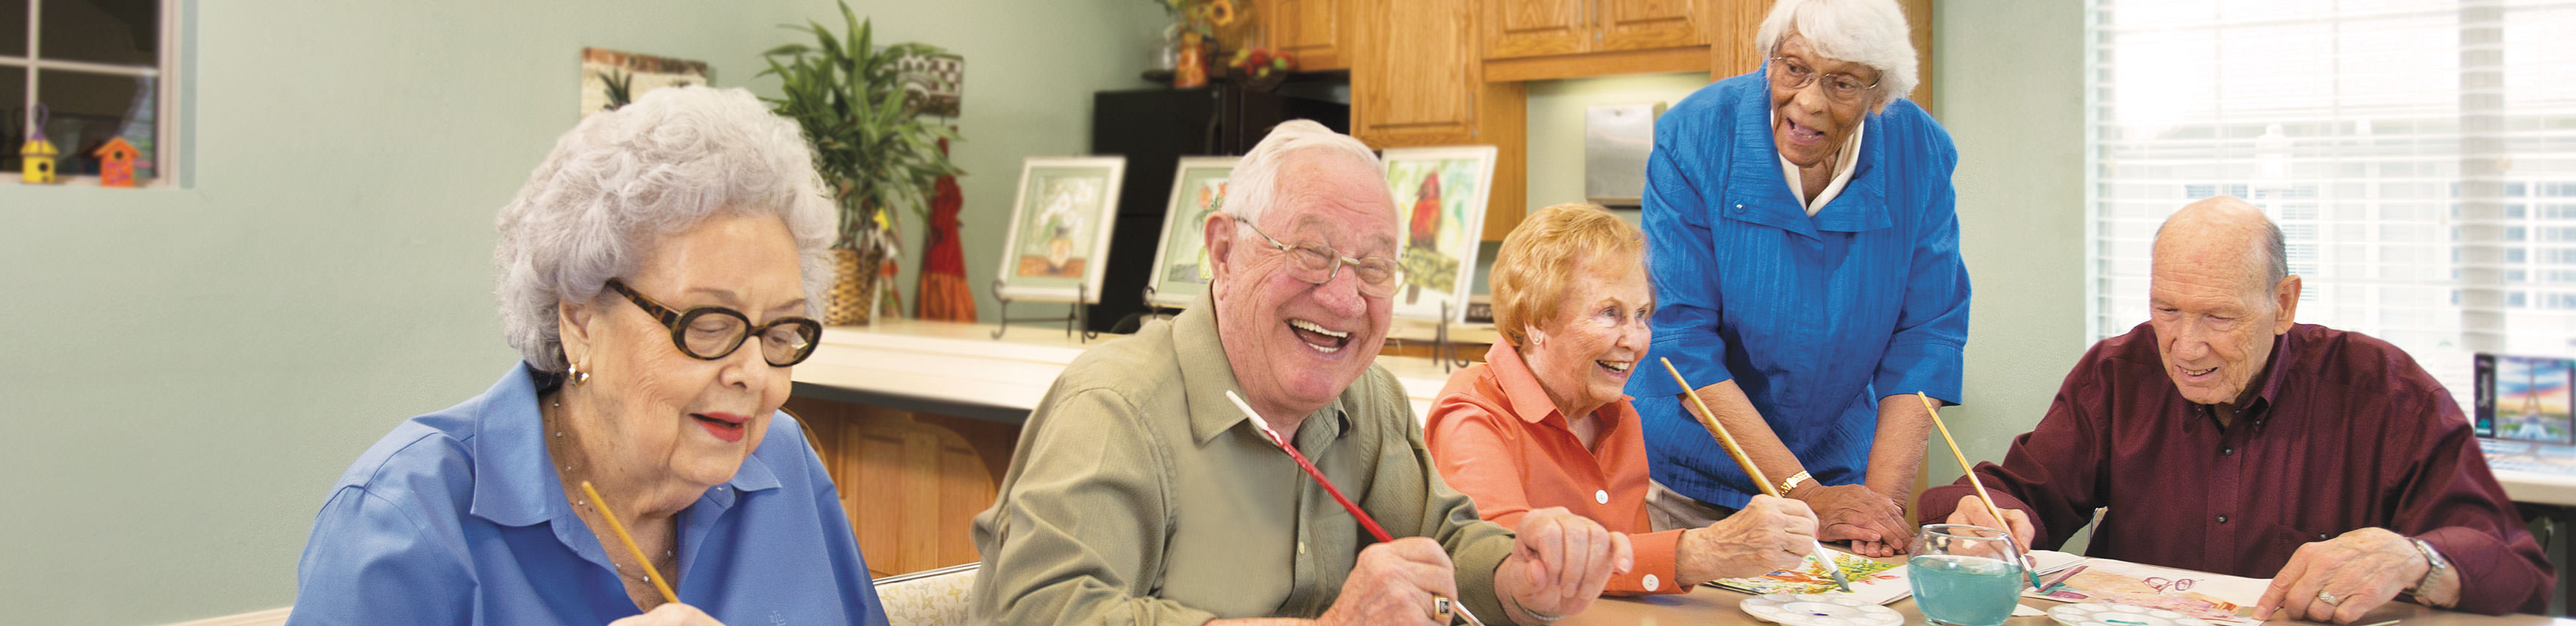 There's always something fun and interesting to do at Legend Senior Living.